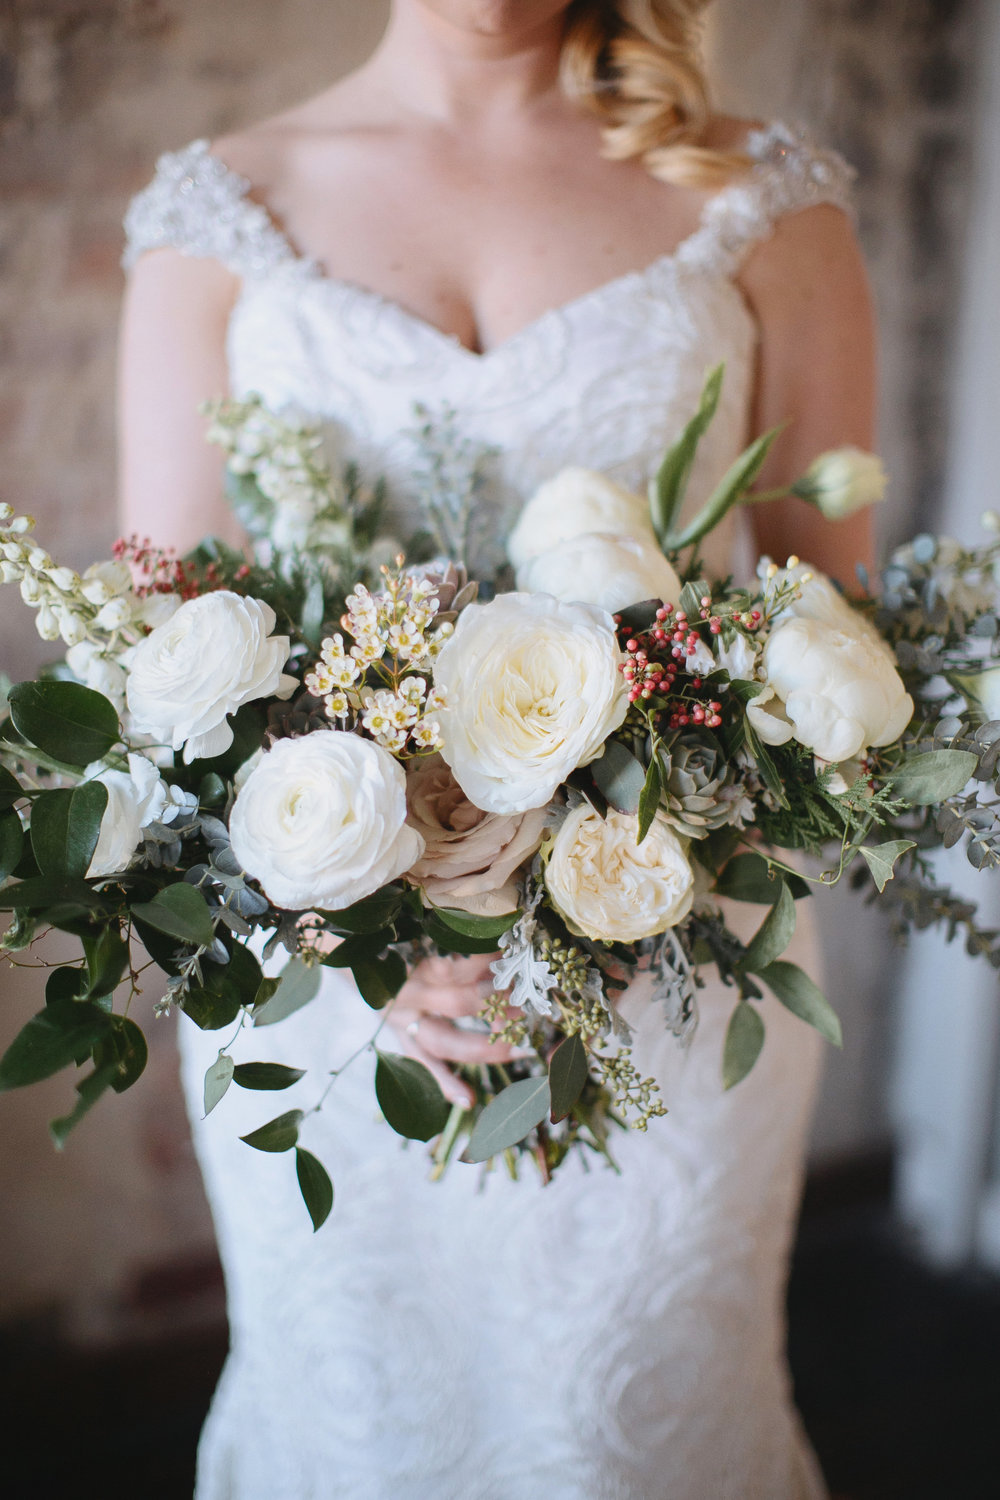 Wintry bridal bouquet with all white flowers, natural greenery, and touches of red berries // Nashville Wedding Florist